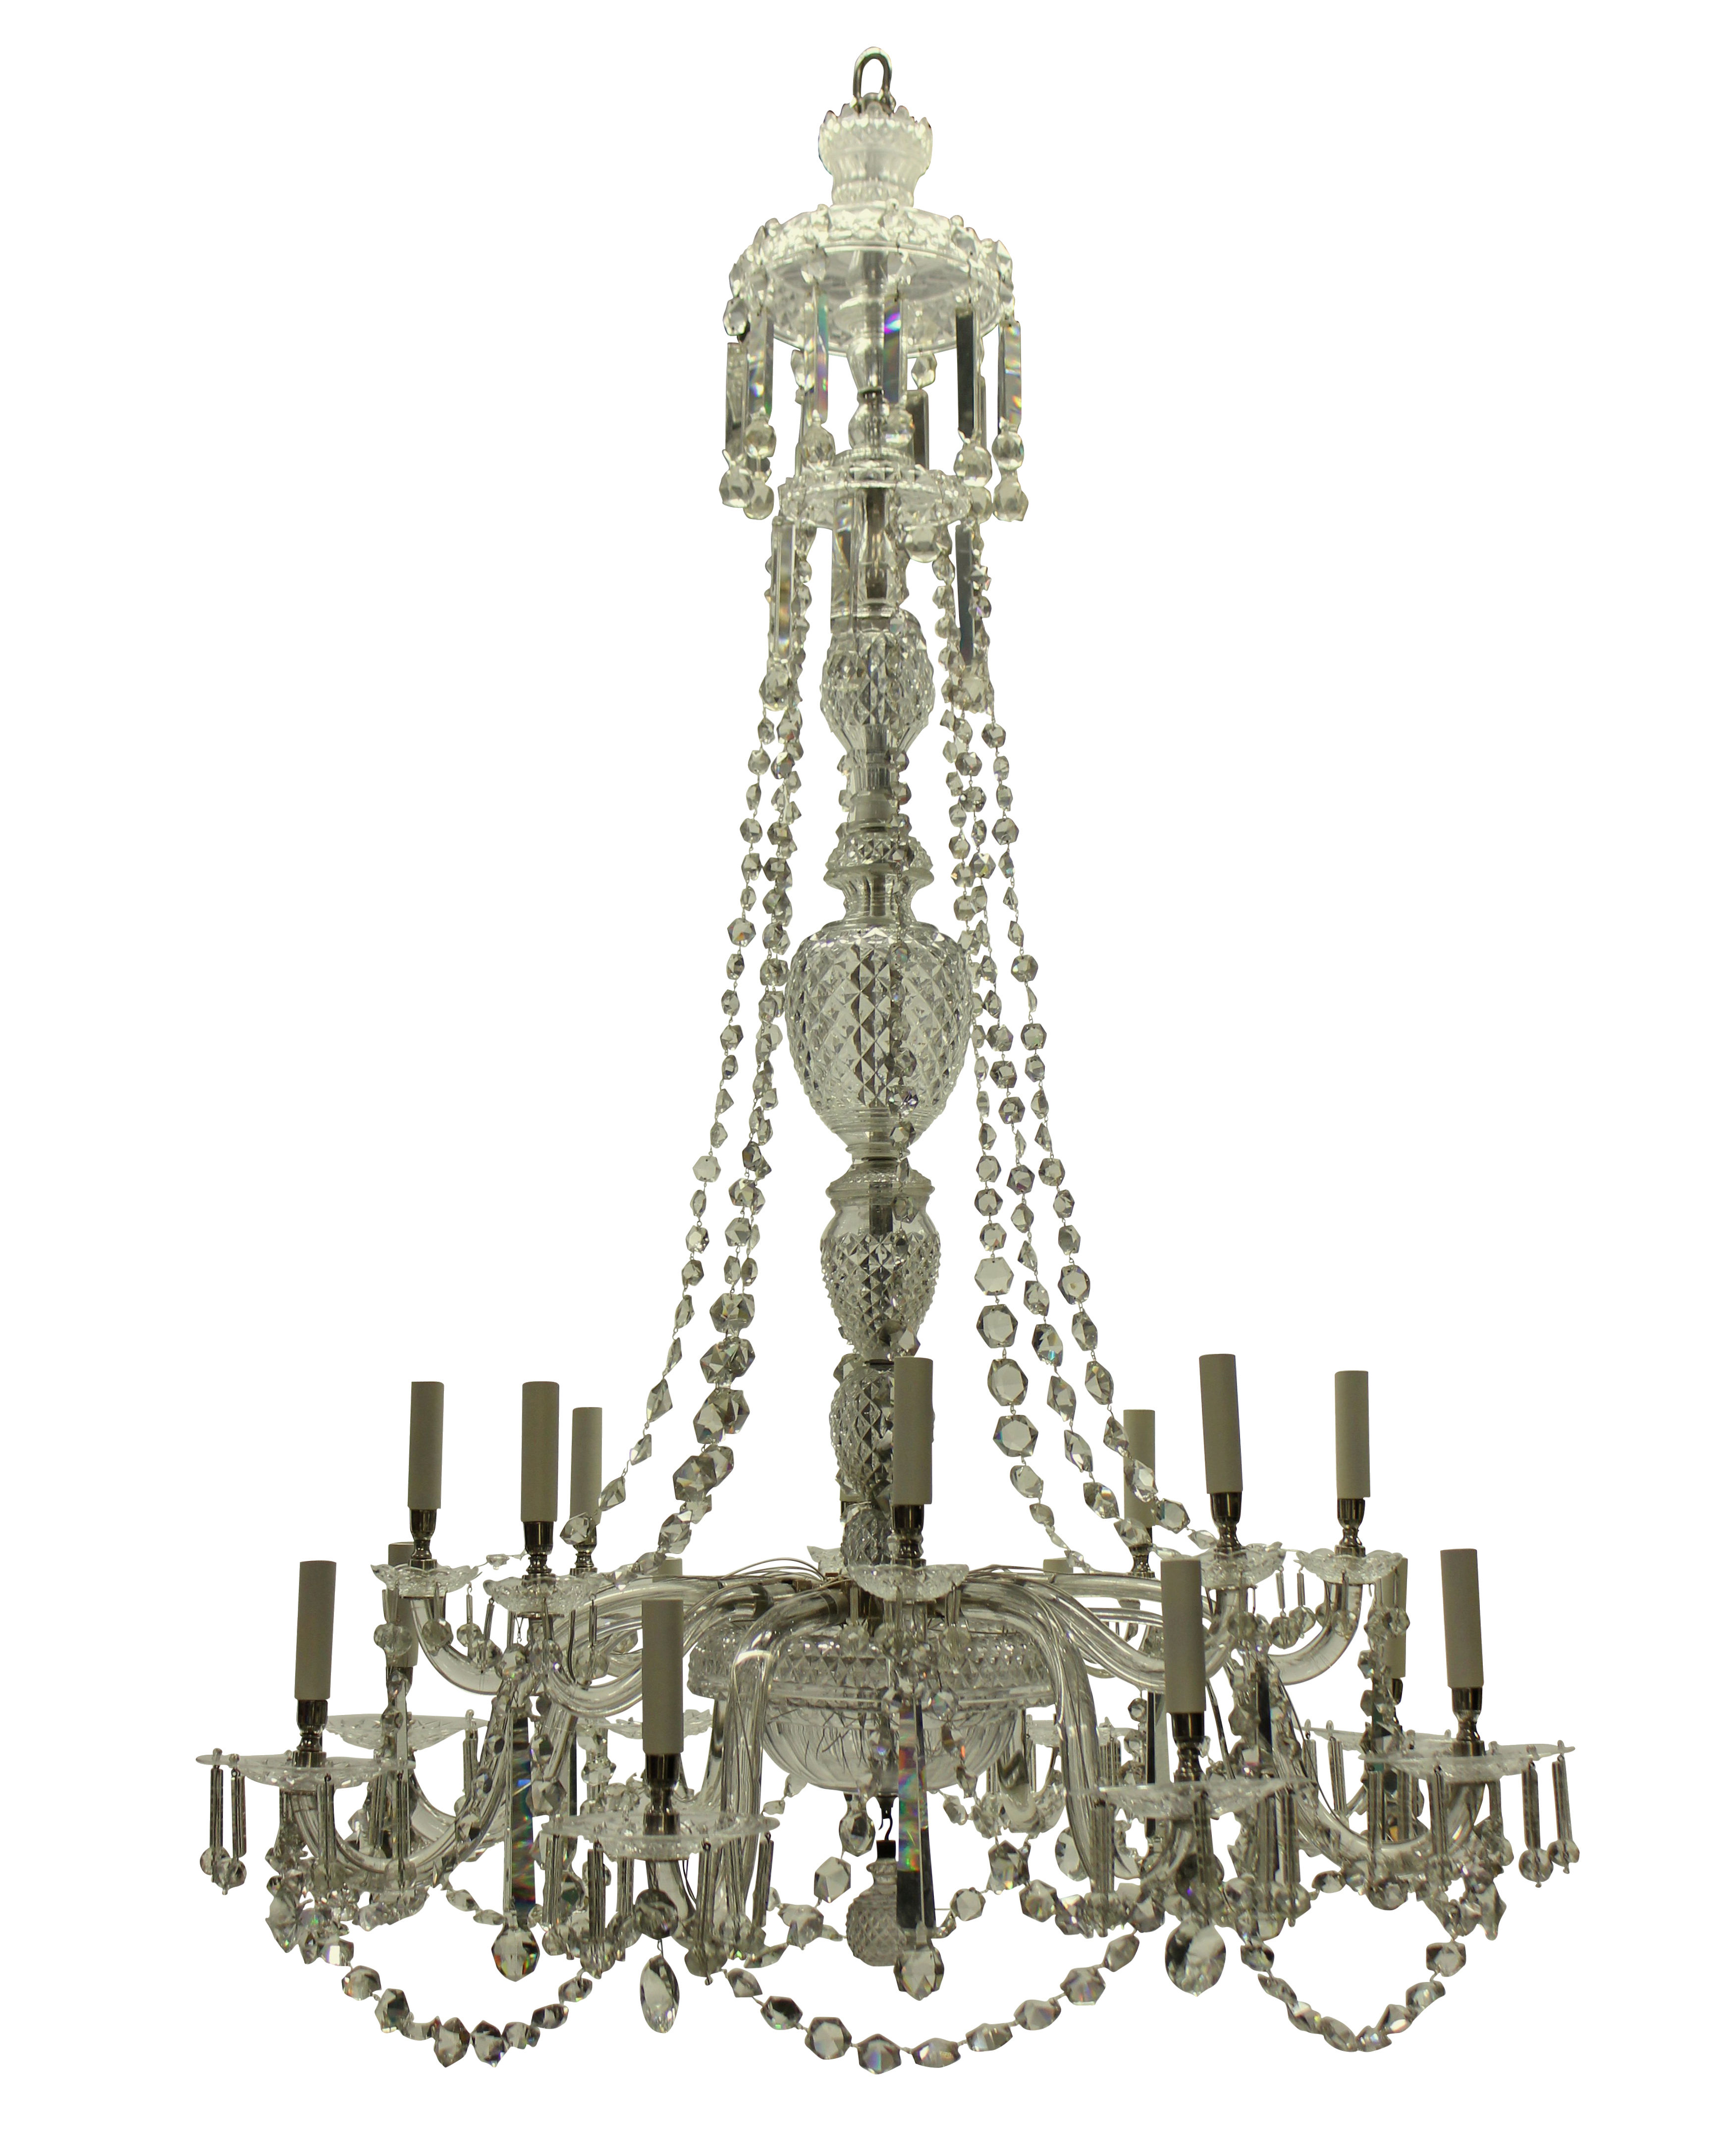 A LARGE ENGLISH SIXTEEN ARM CUT GLASS CHANDELIER OF FINE QUALITY